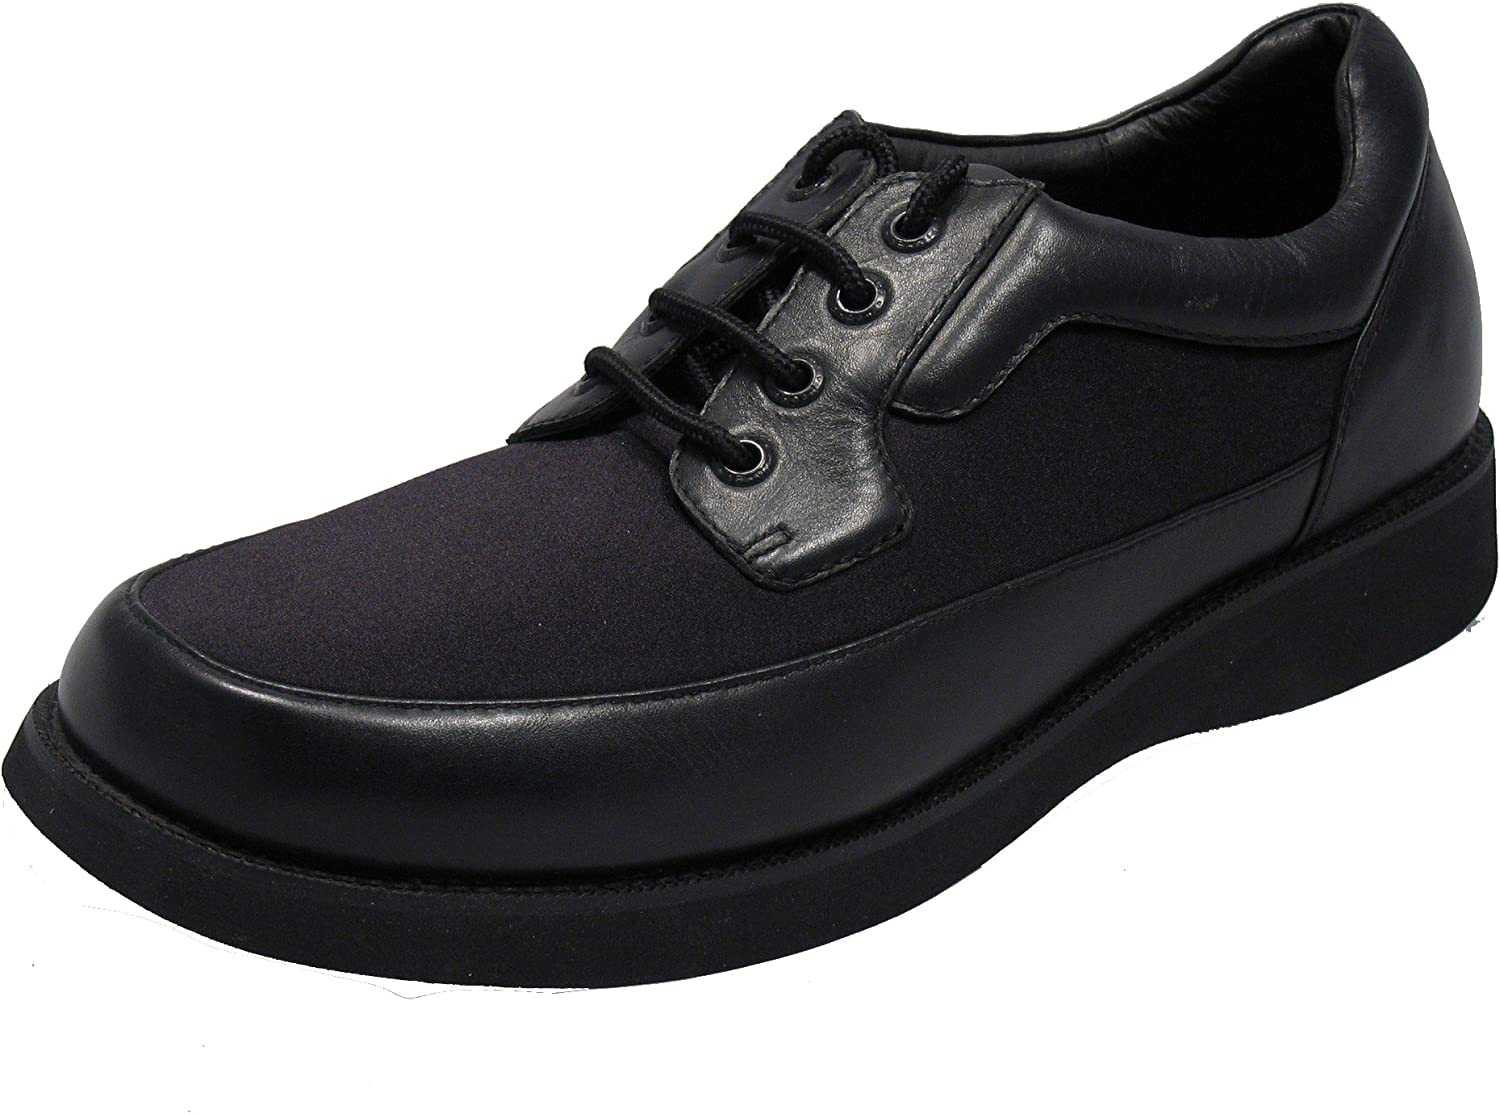 Propet MPED 10 X-Wide (5E) Man's Ultra-Accomodating Tie shoes That ensures a Perfect Fit.